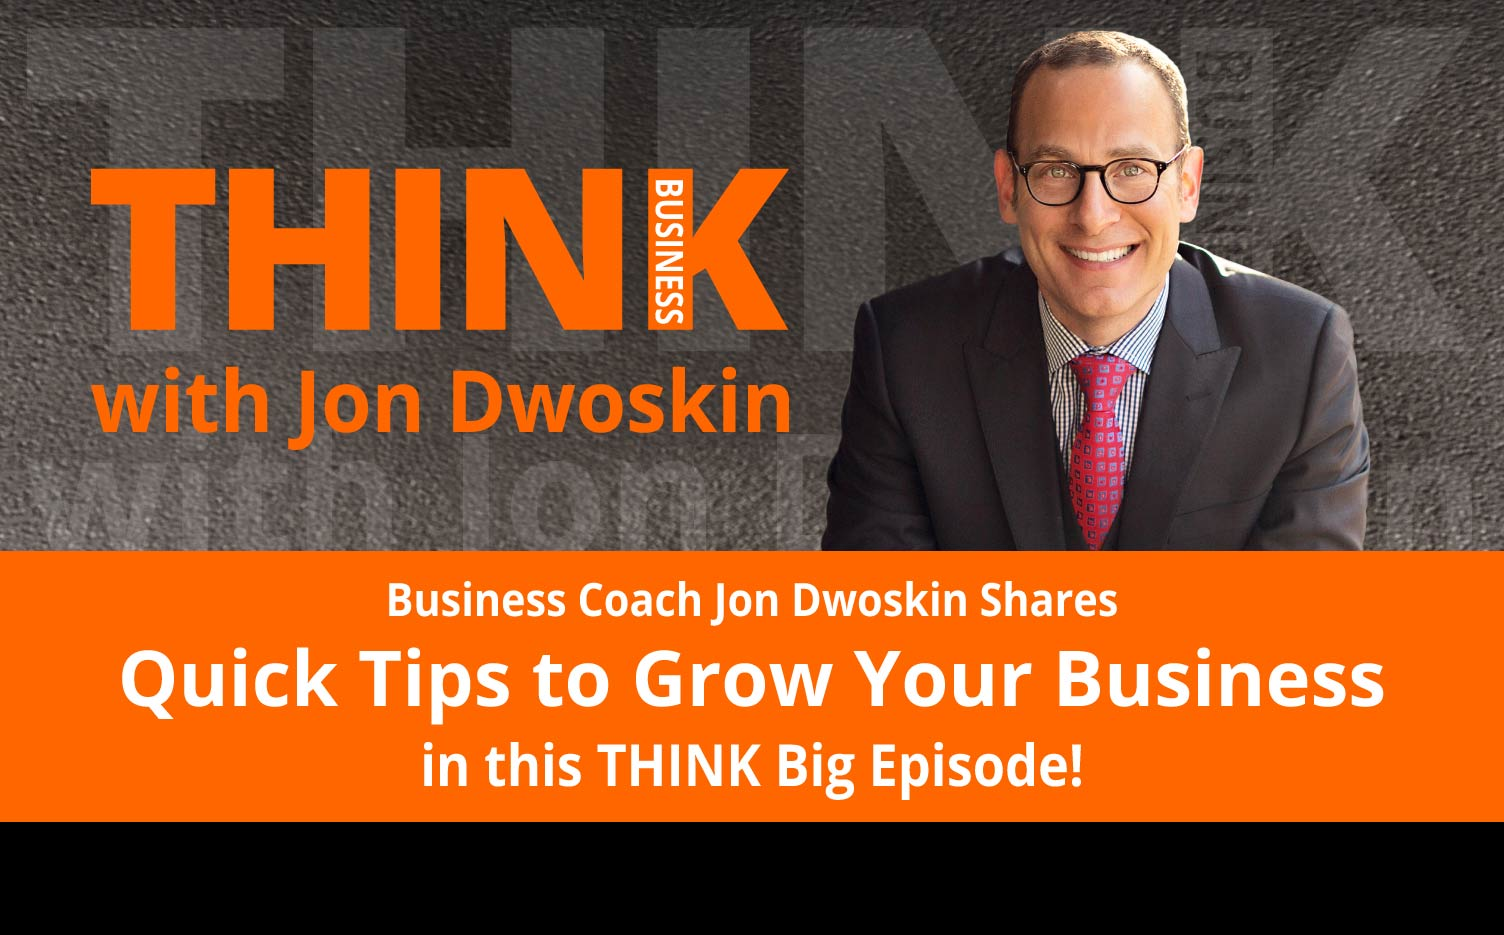 THINK Business Podcast: Today's Quick Tip: The Key to Marketing